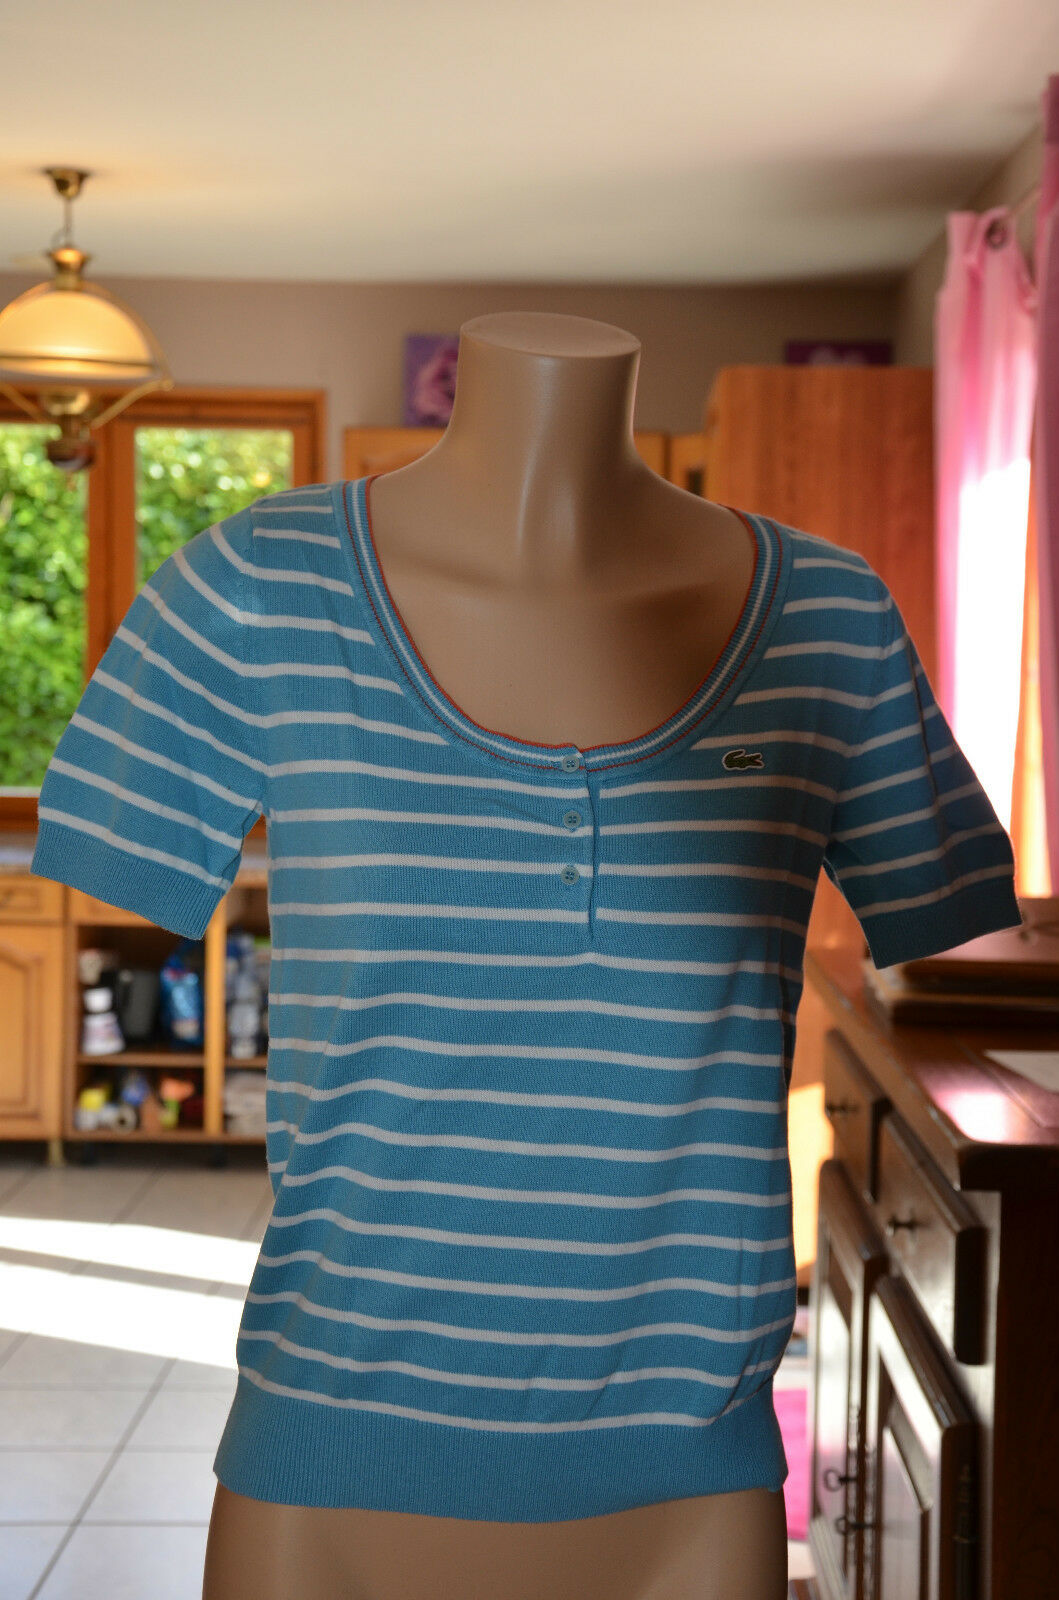 LACOSTE- Nice top short sleeves woman bluee - Size 38 - MINT